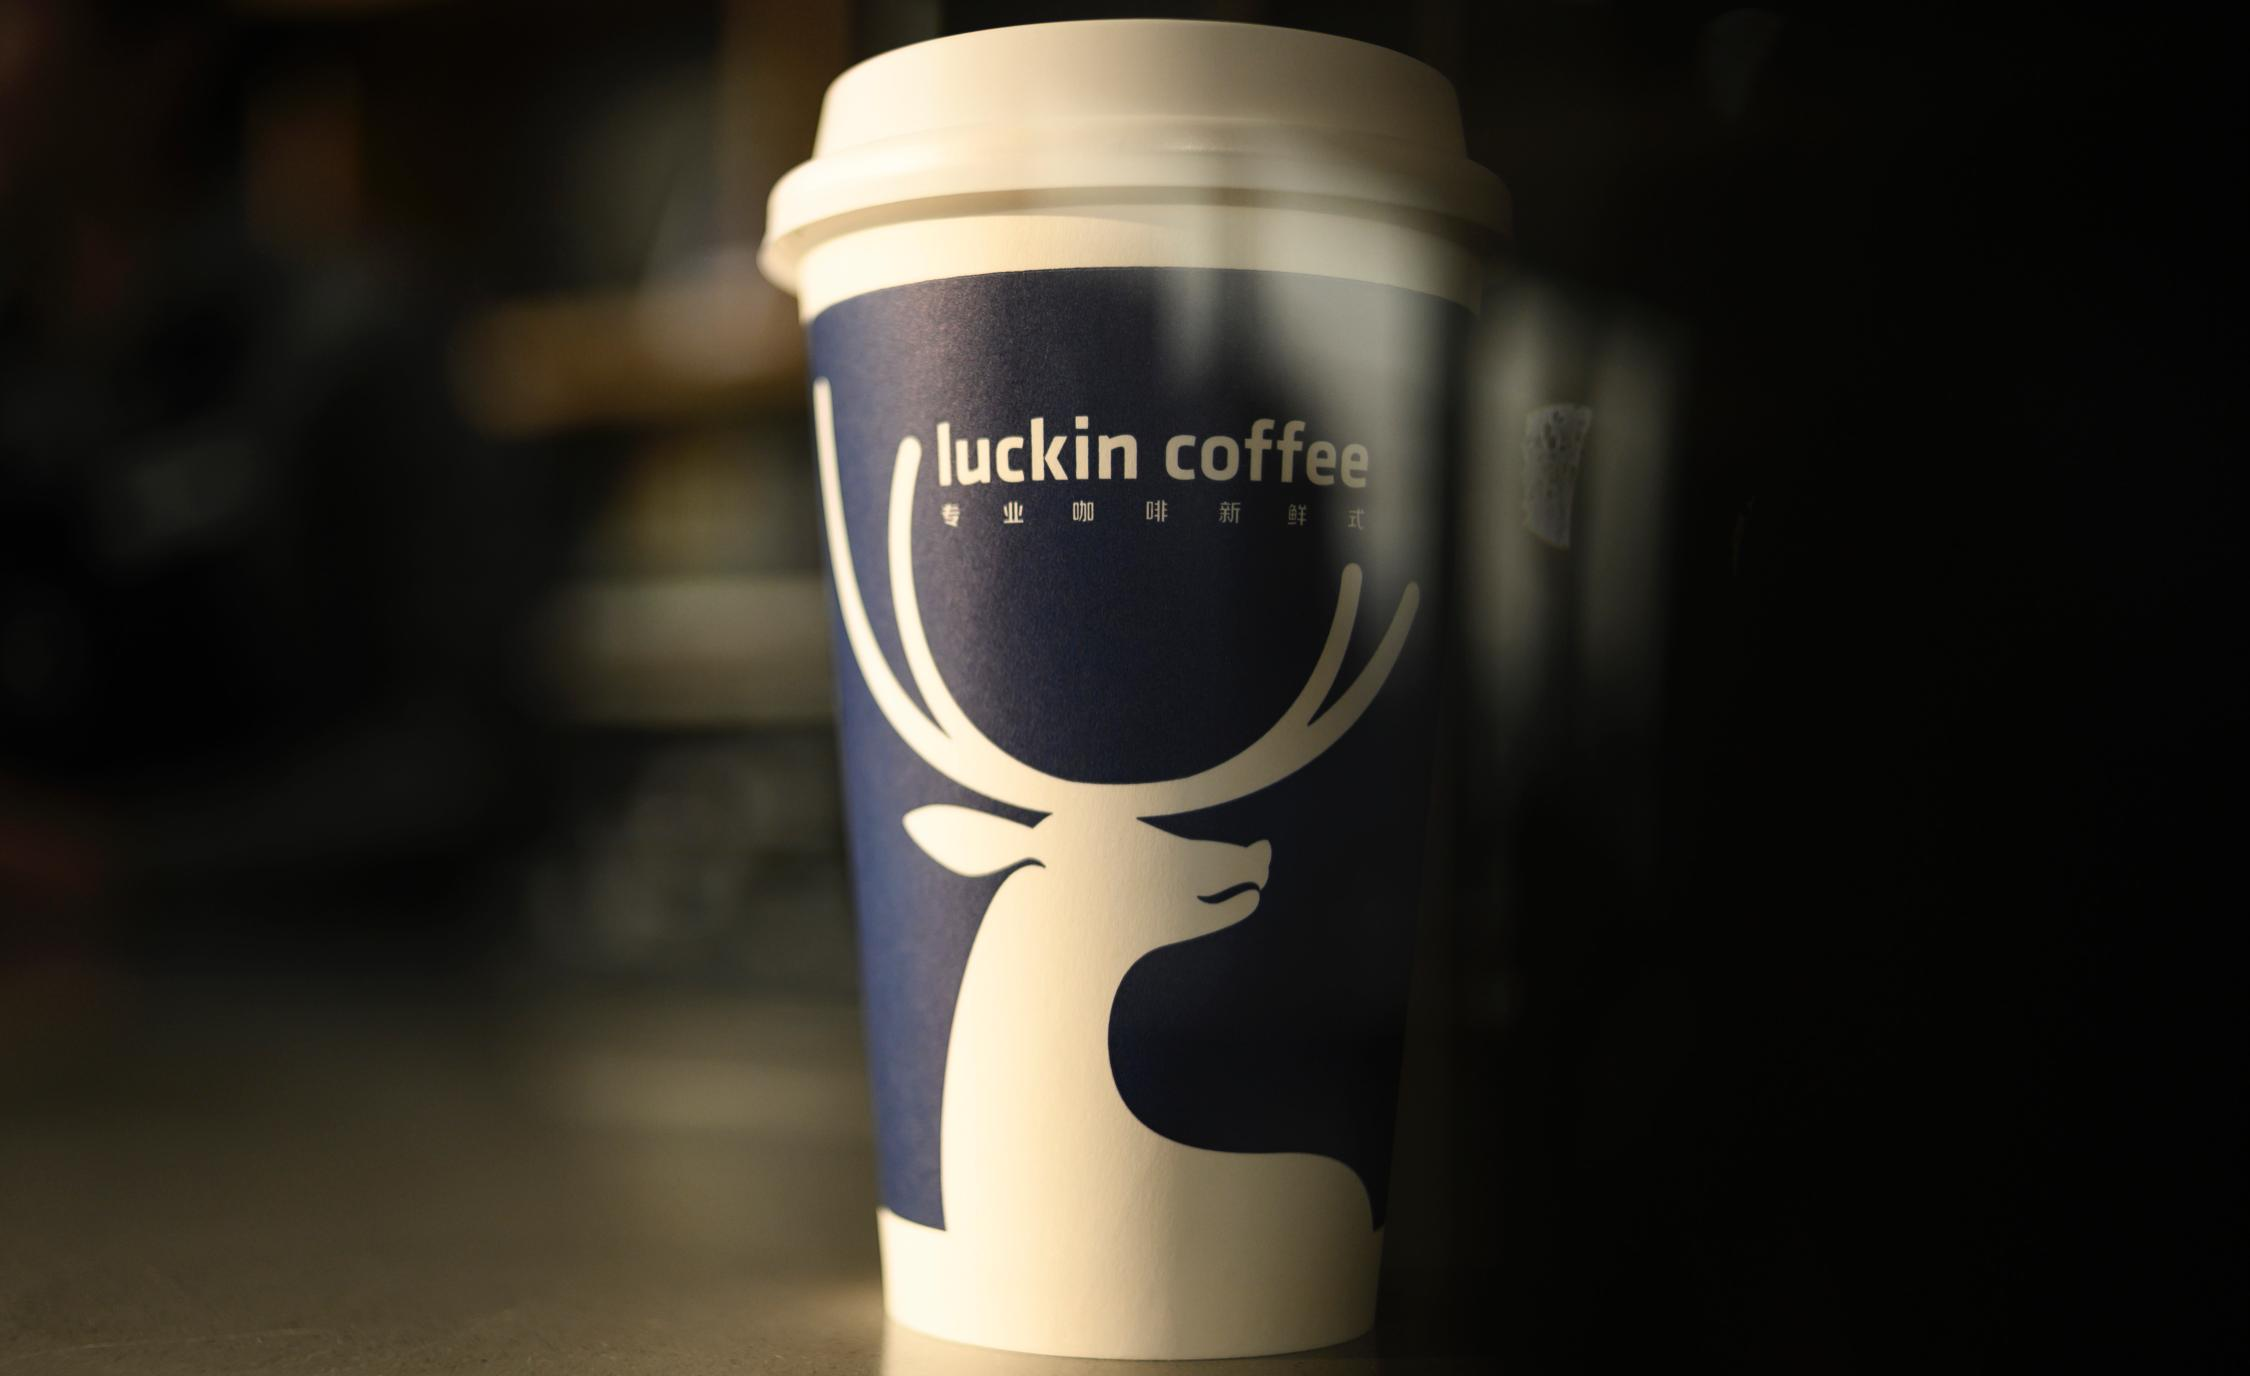 Chinese chain Luckin Coffee still can't catch a break